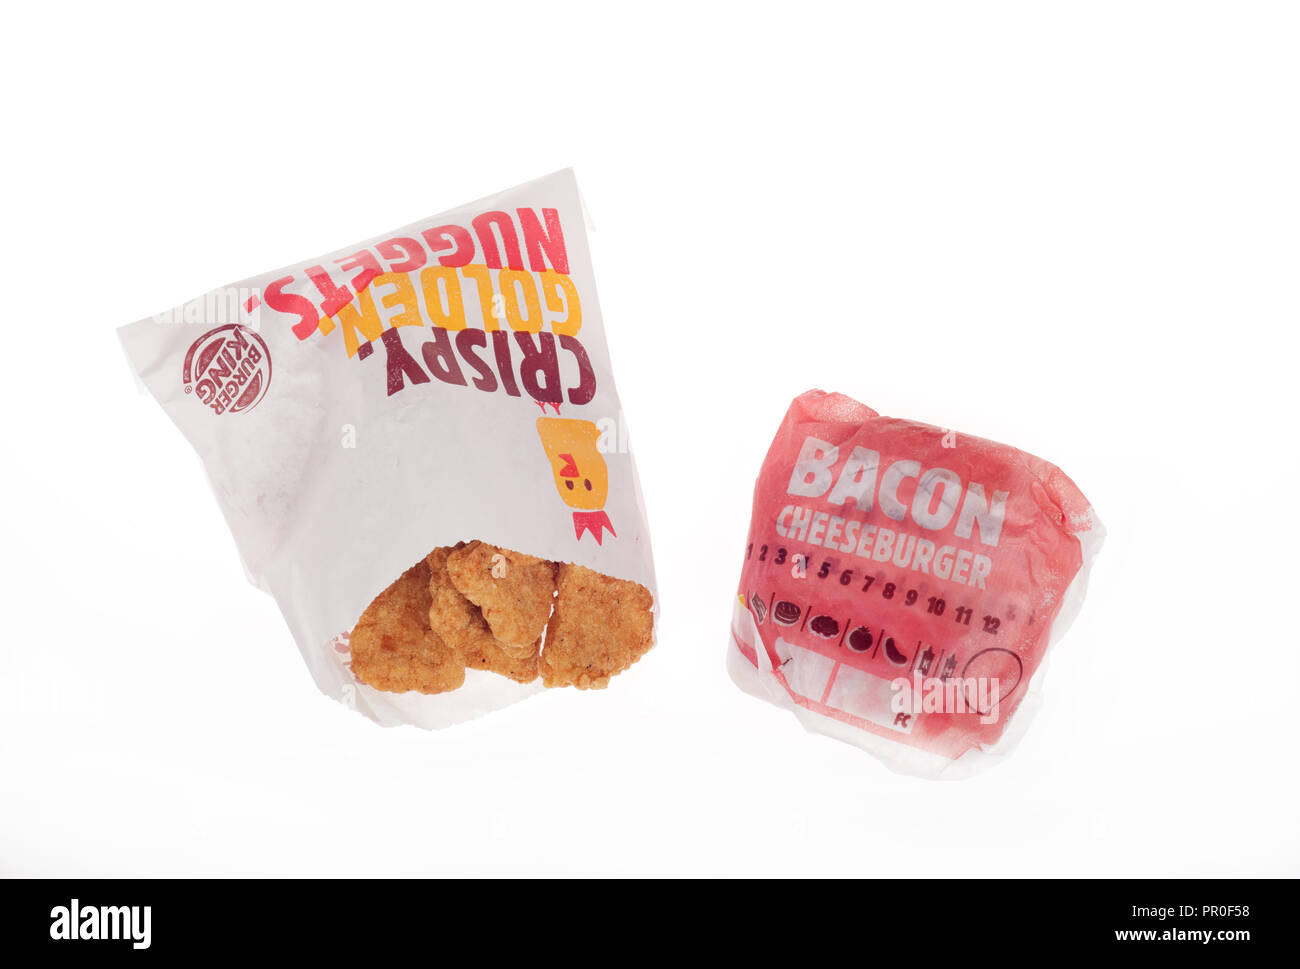 Burger King wrapped Bacon Cheeseburger and packet of chicken nuggets - Stock Image